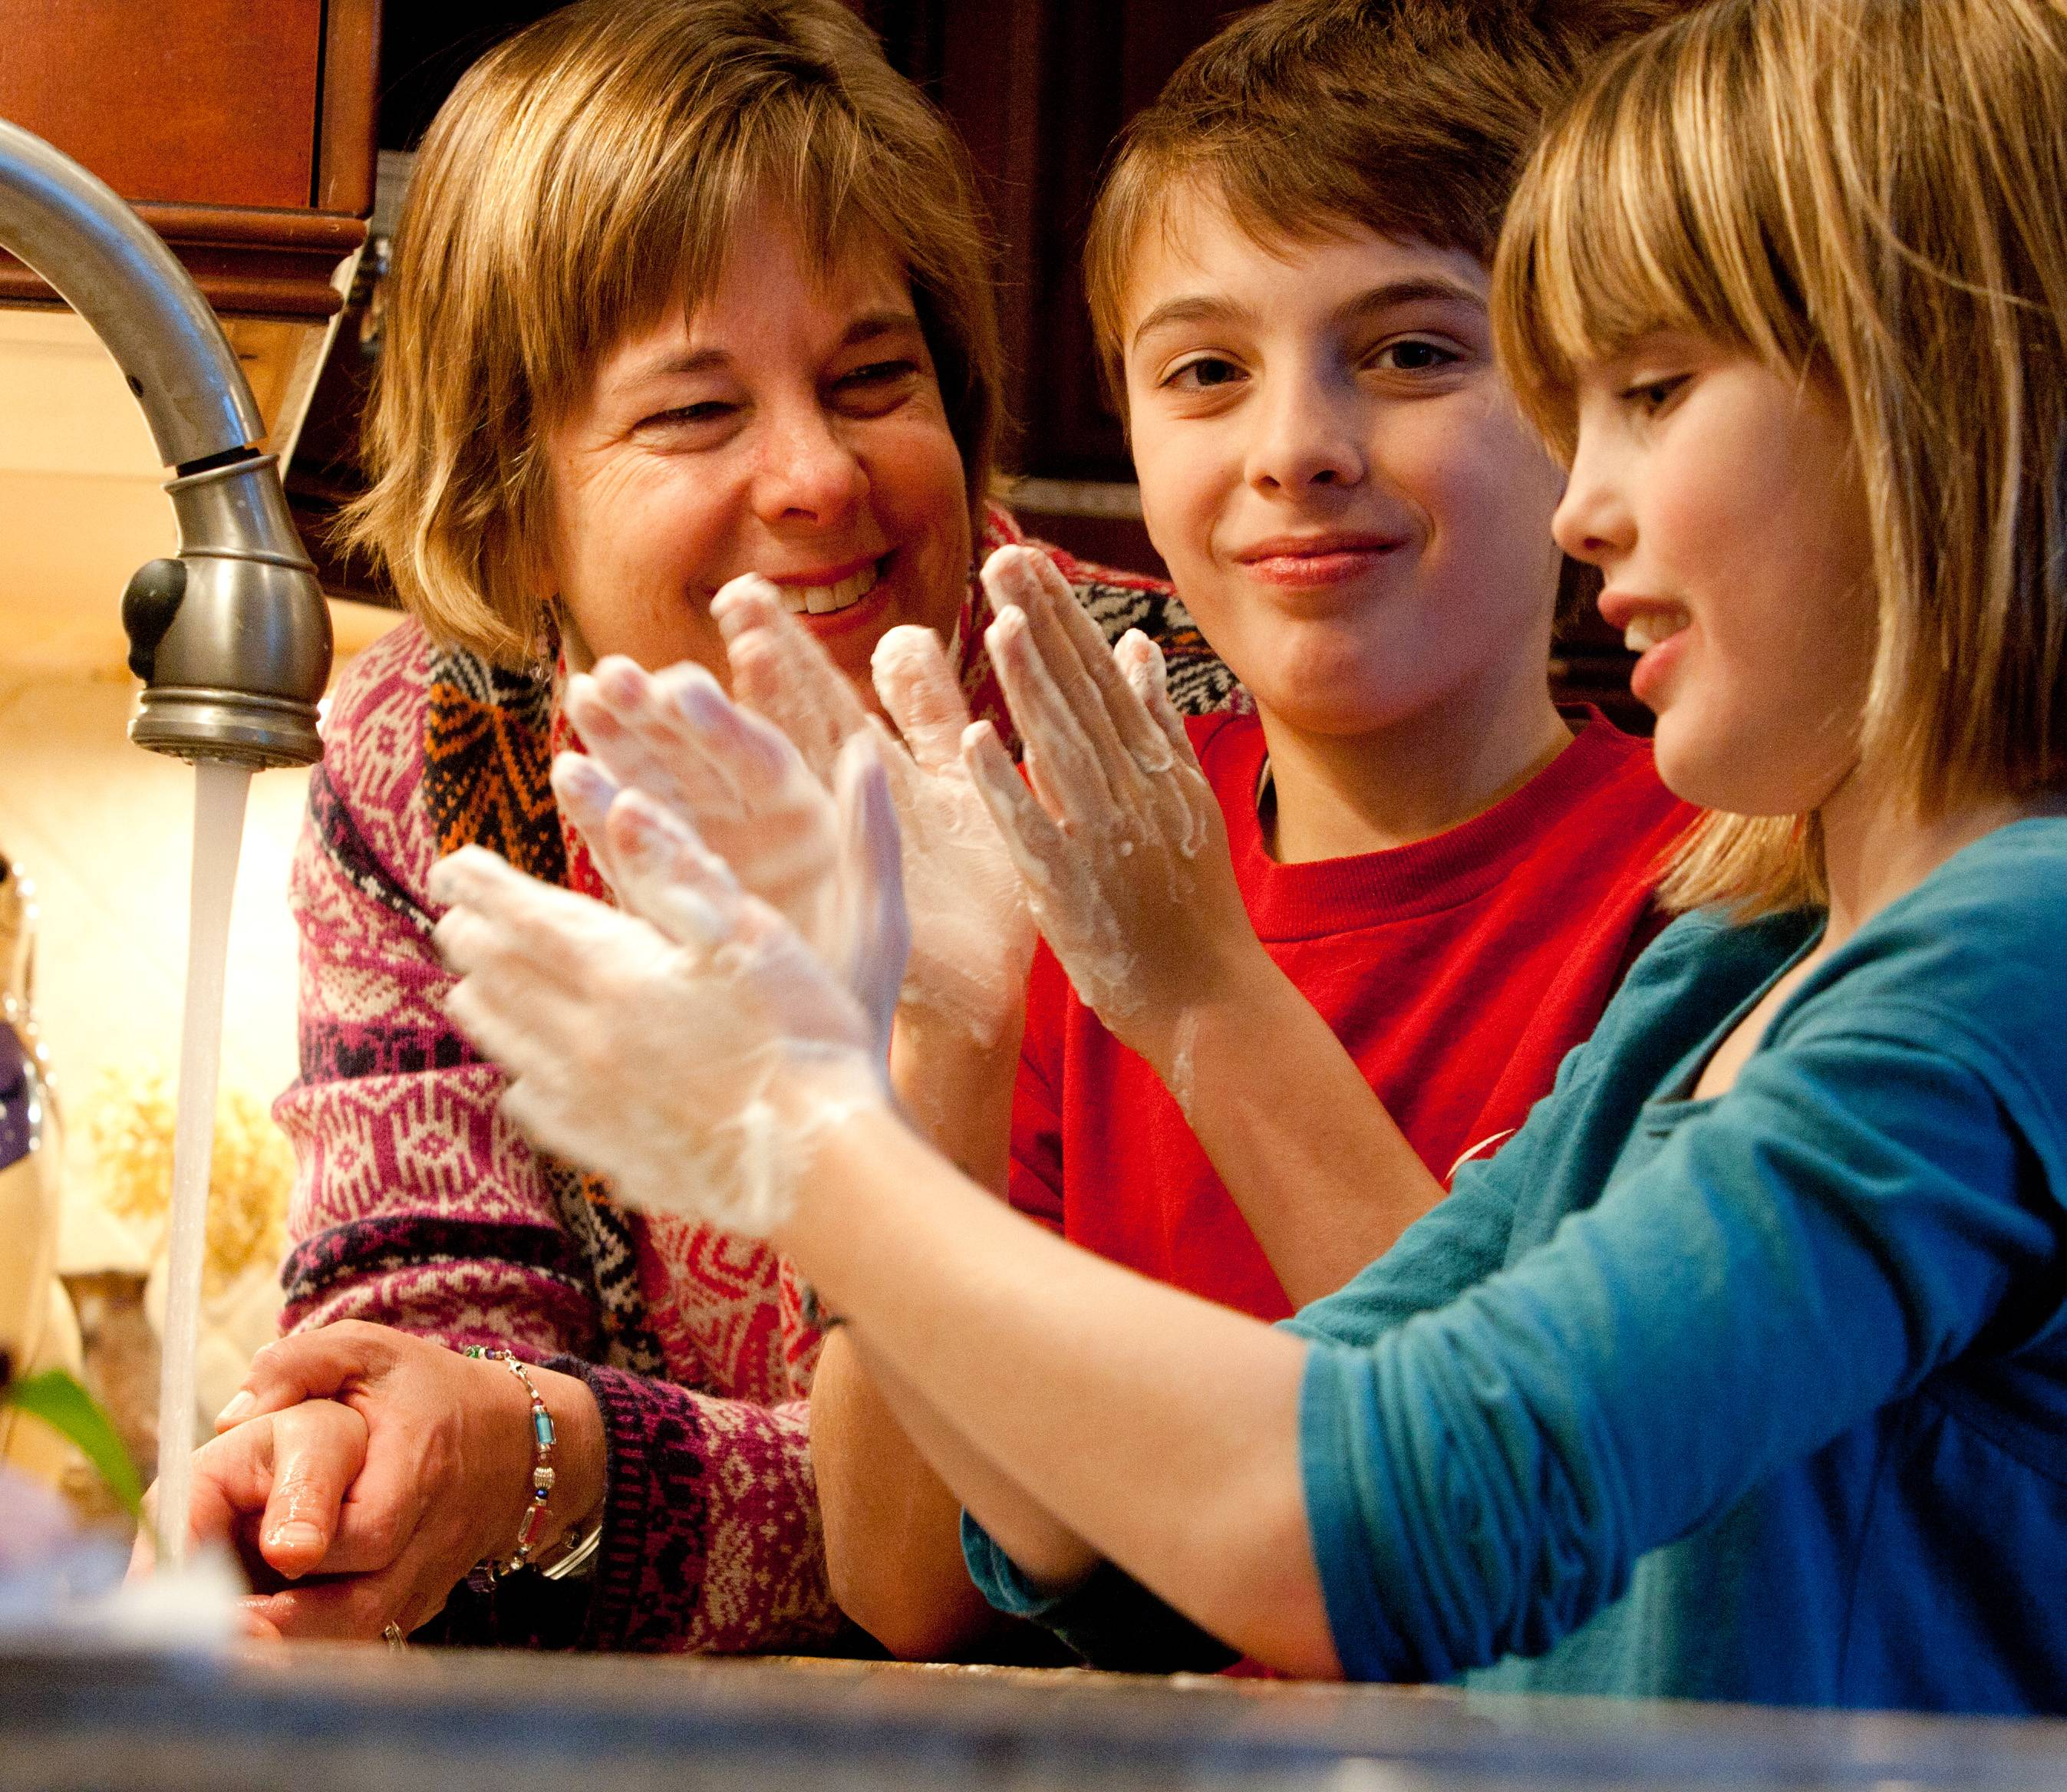 Dr. Karen Judy, a Glen Ellyn pediatrician, encourages germ-fighting hygiene with her children Thomas, 11, and Kate, 9.